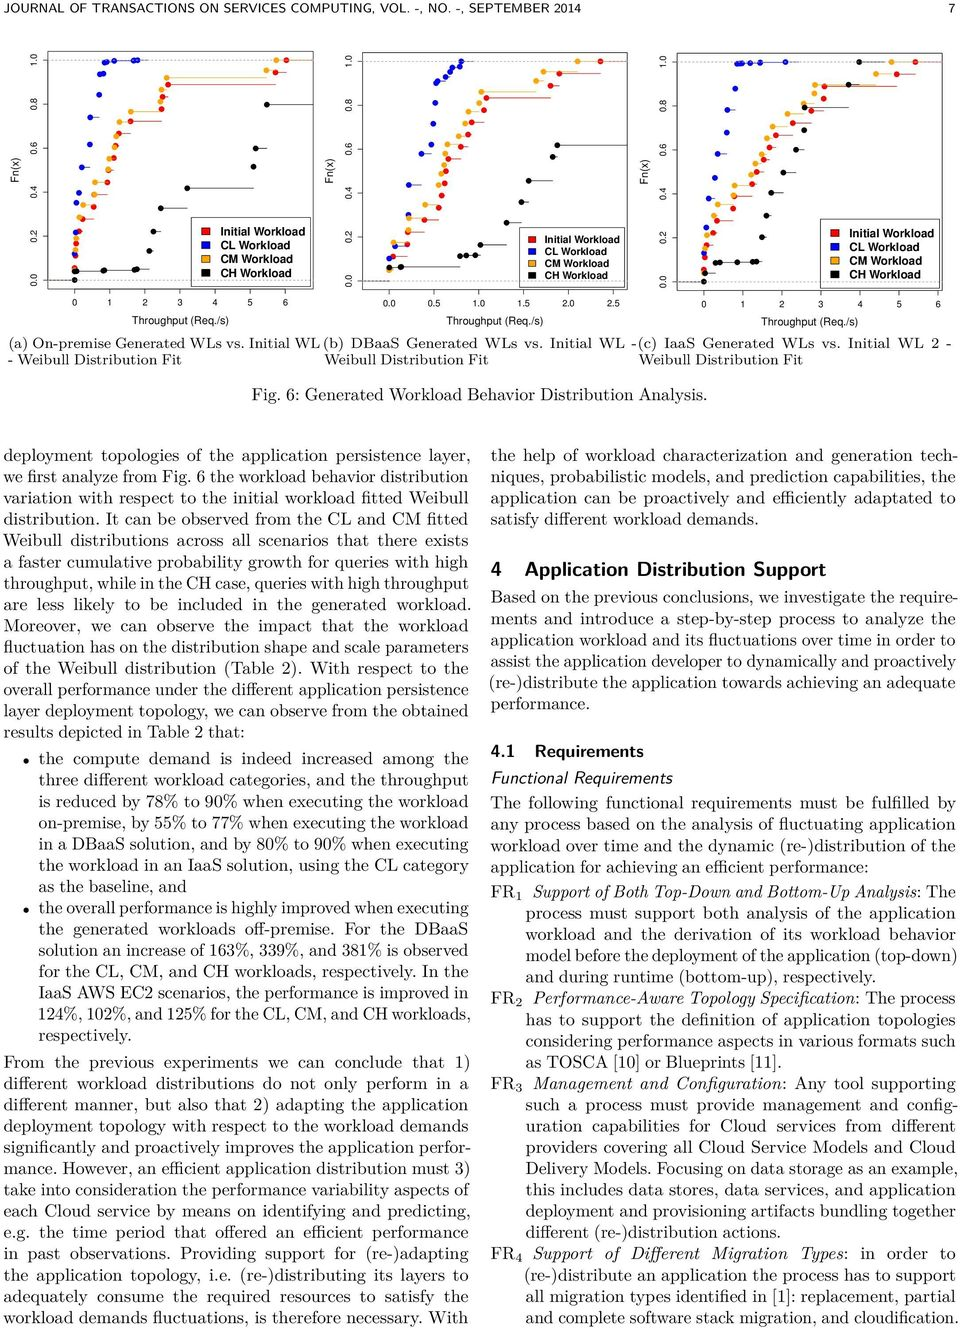 Initial WL -(c) IaaS Generated WLs vs. Initial WL 2 - Weibull Distribution Fit Weibull Distribution Fit Fig. 6: Generated Workload Behavior Distribution Analysis.